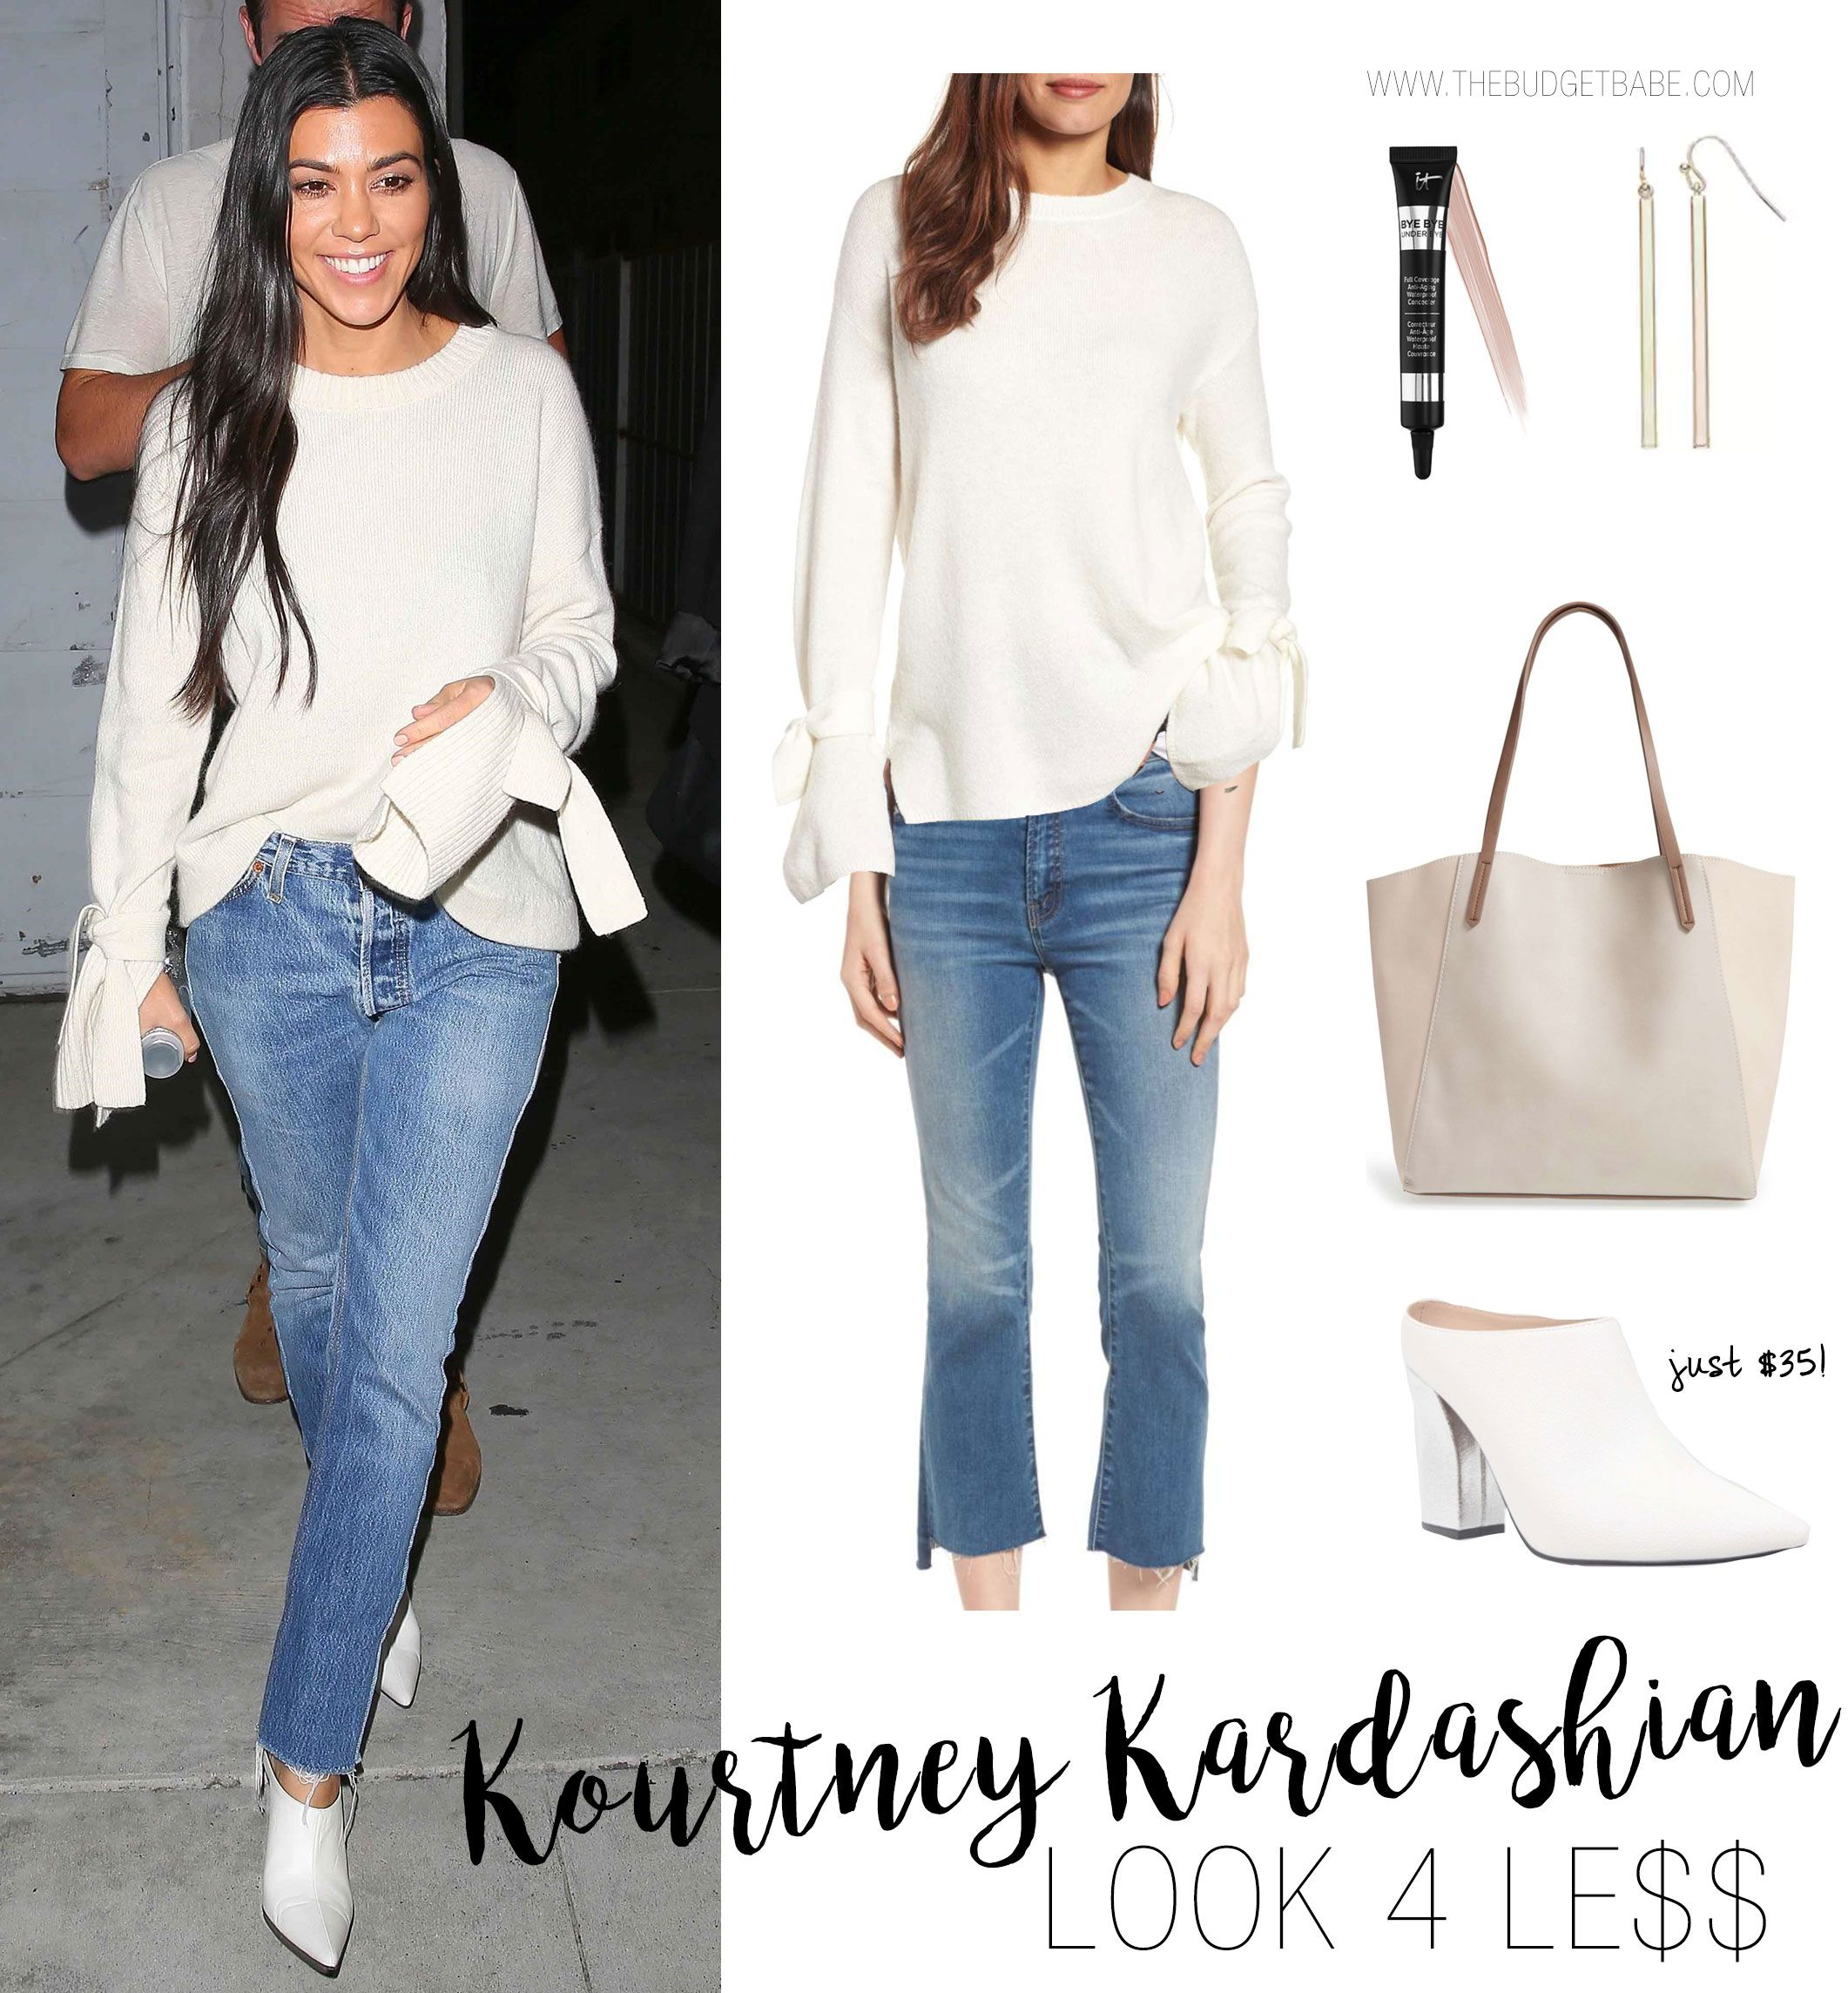 bb3a4fd61d19f Kourtney Kardashian s white bell sleeve sweater and crop hem jeans look for  less fall casual outfit idea - love the white mules!